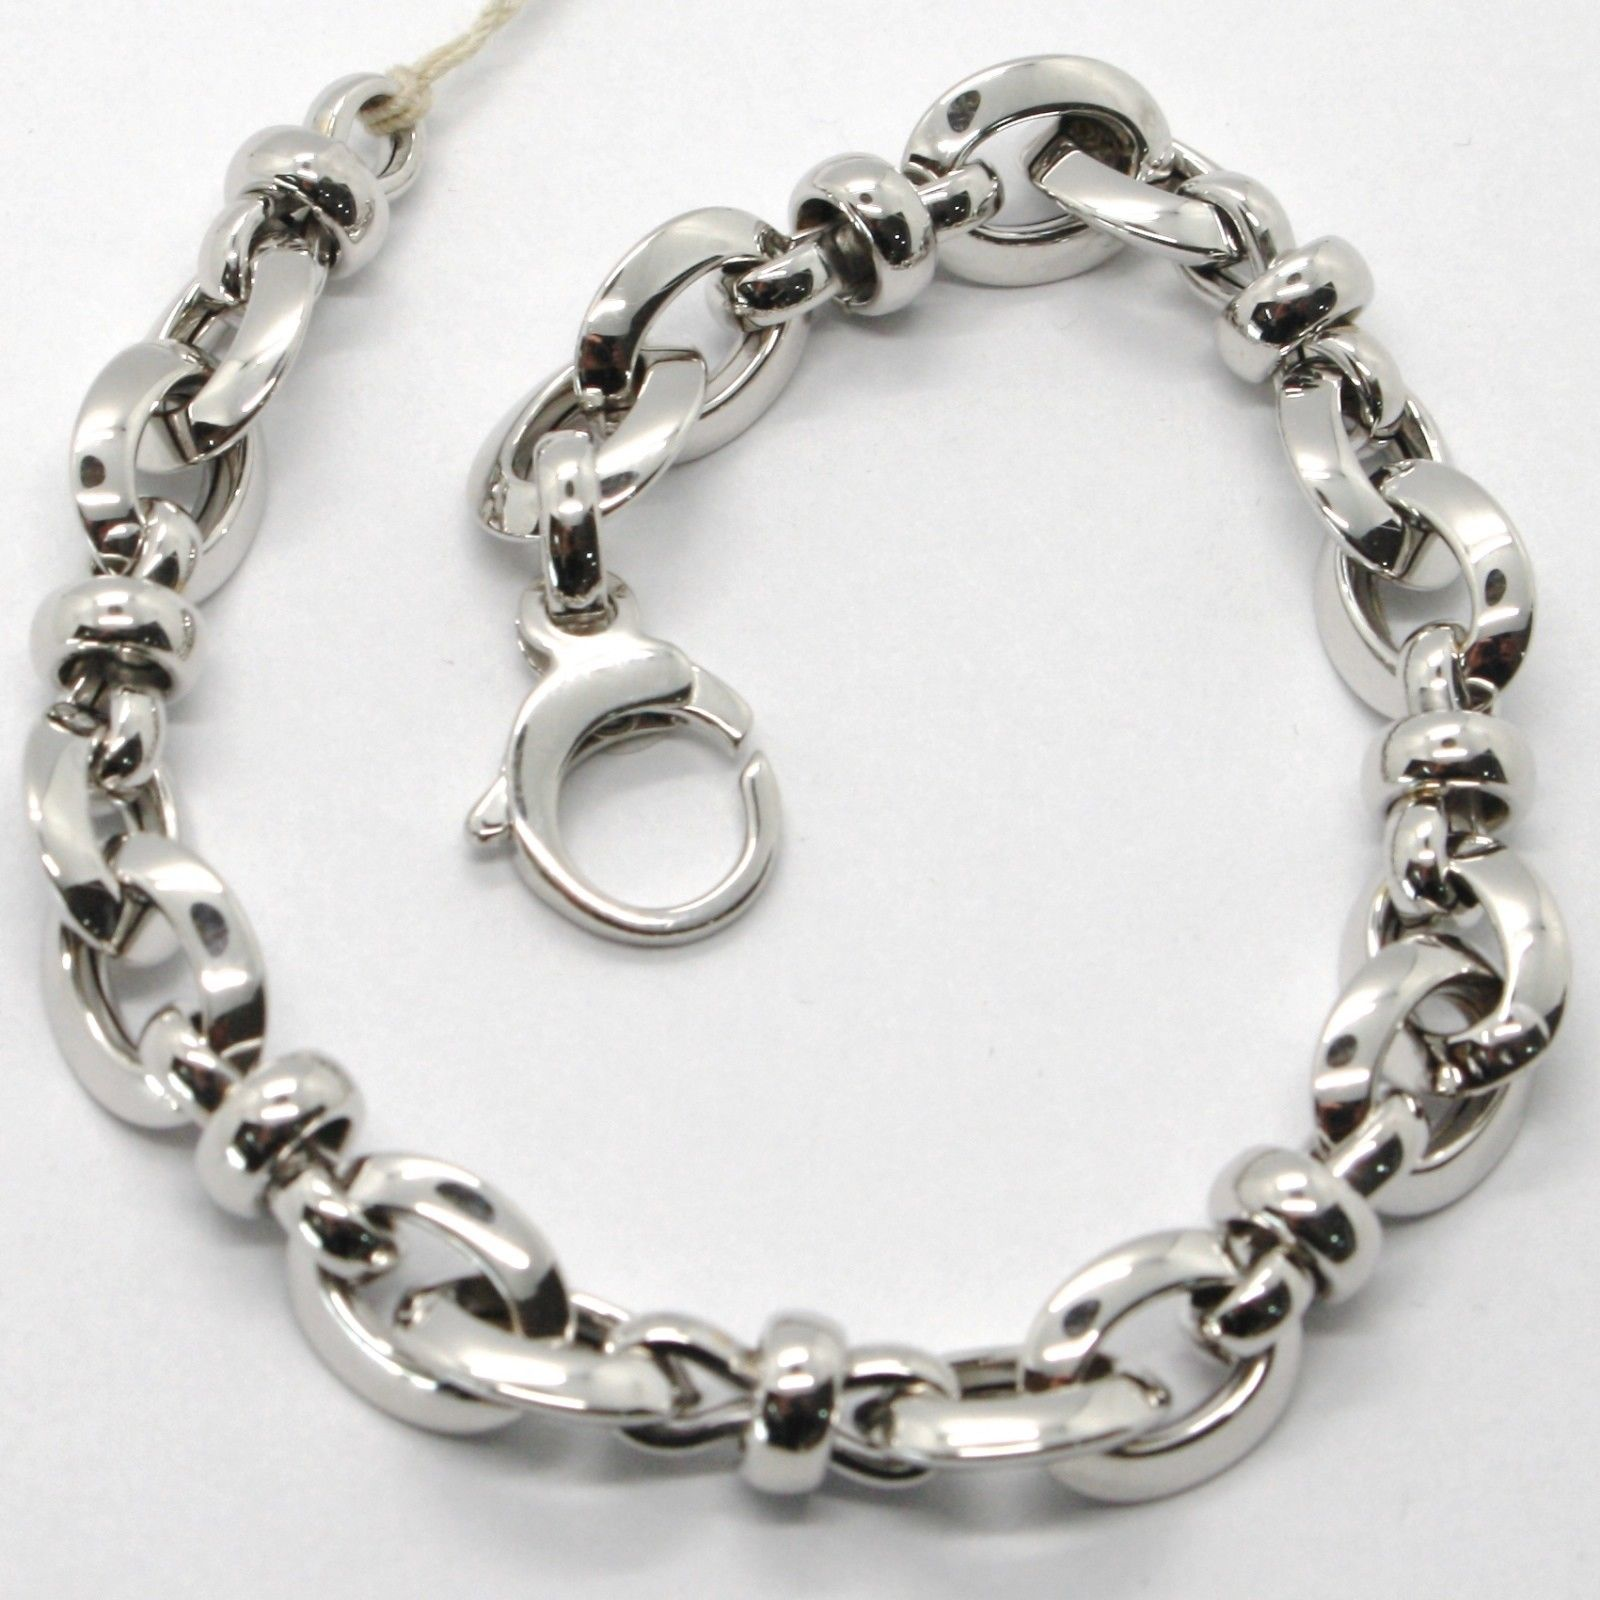 18K WHITE GOLD BRACELET ALTERNATE OVAL, ROLO, INFINITE LINK, MADE IN ITALY